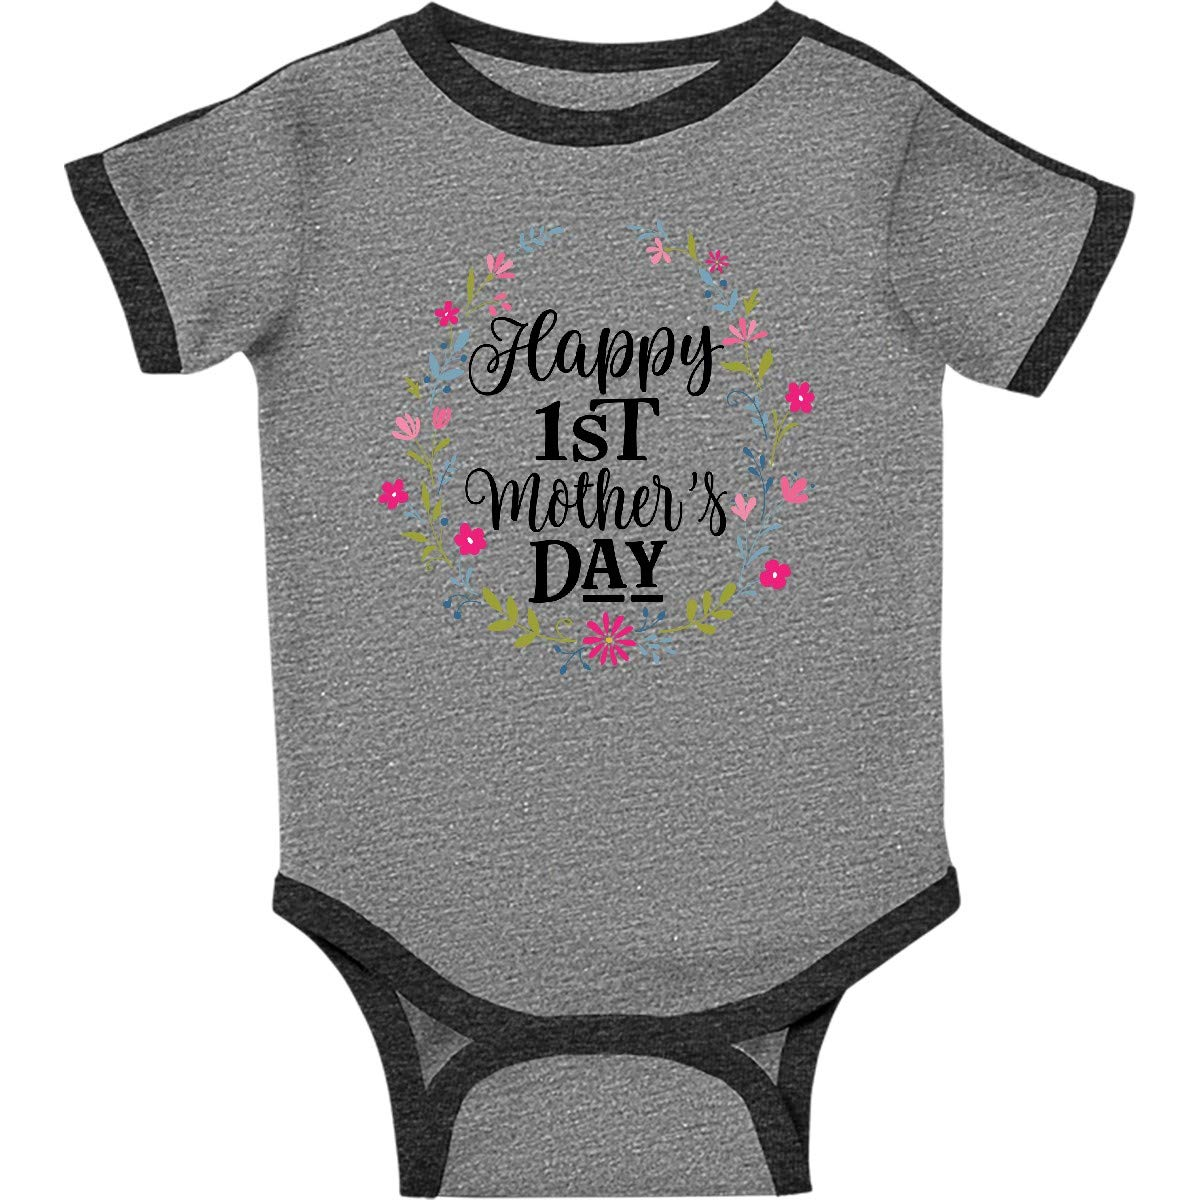 fd31991be Amazon.com: inktastic - Happy 1st Mothers Day Outfit Girls Infant Creeper  2f629: Clothing